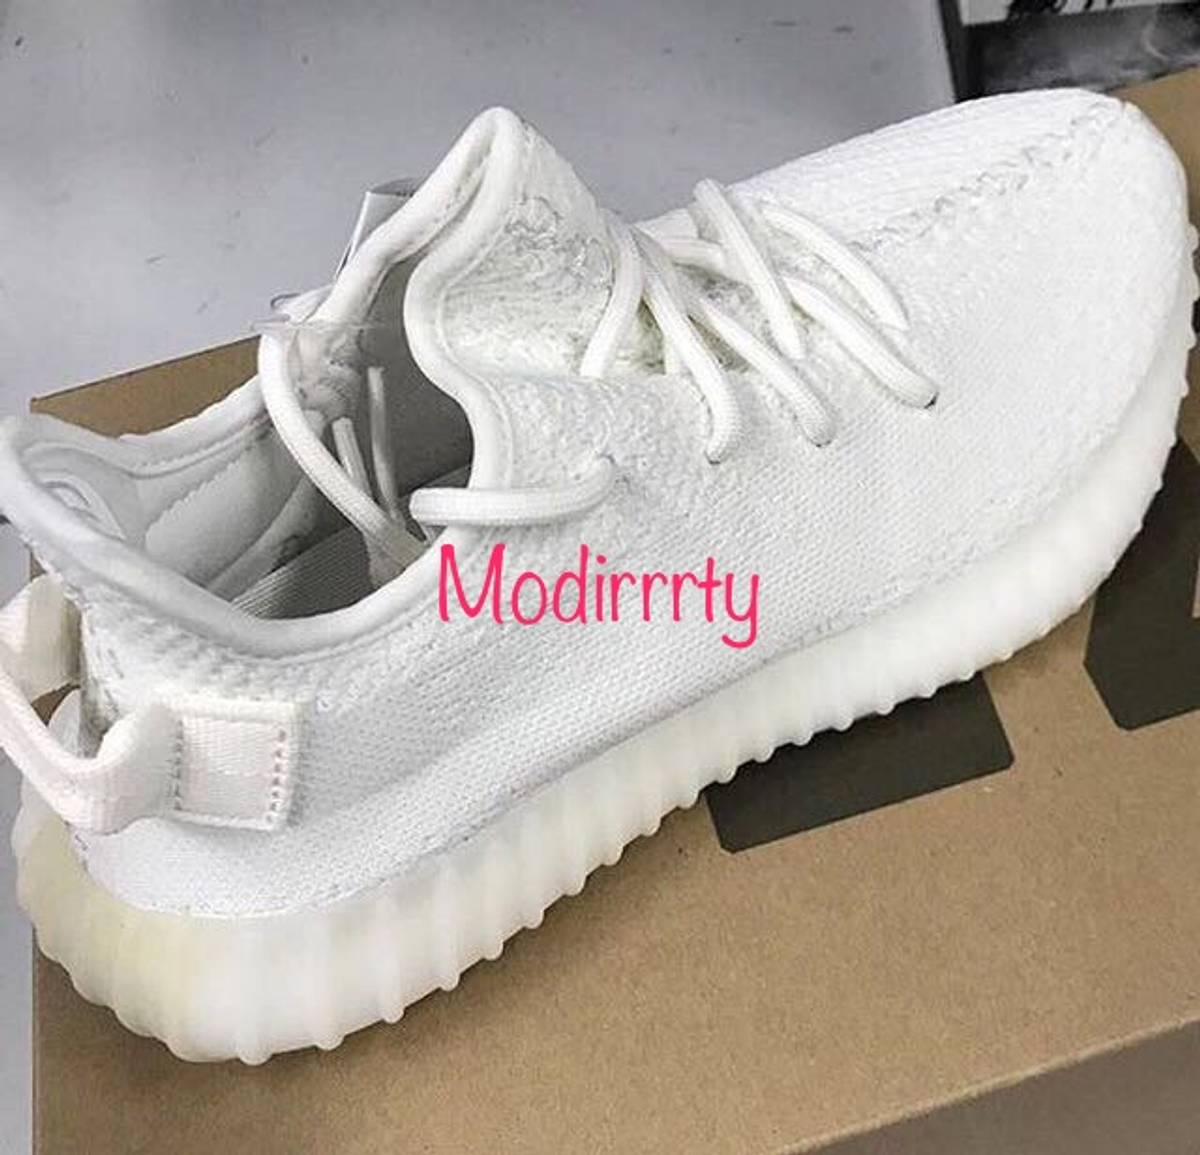 Cheap Adidas Yeezy Boost 350 Low Gray AQ4832 For Sale Online